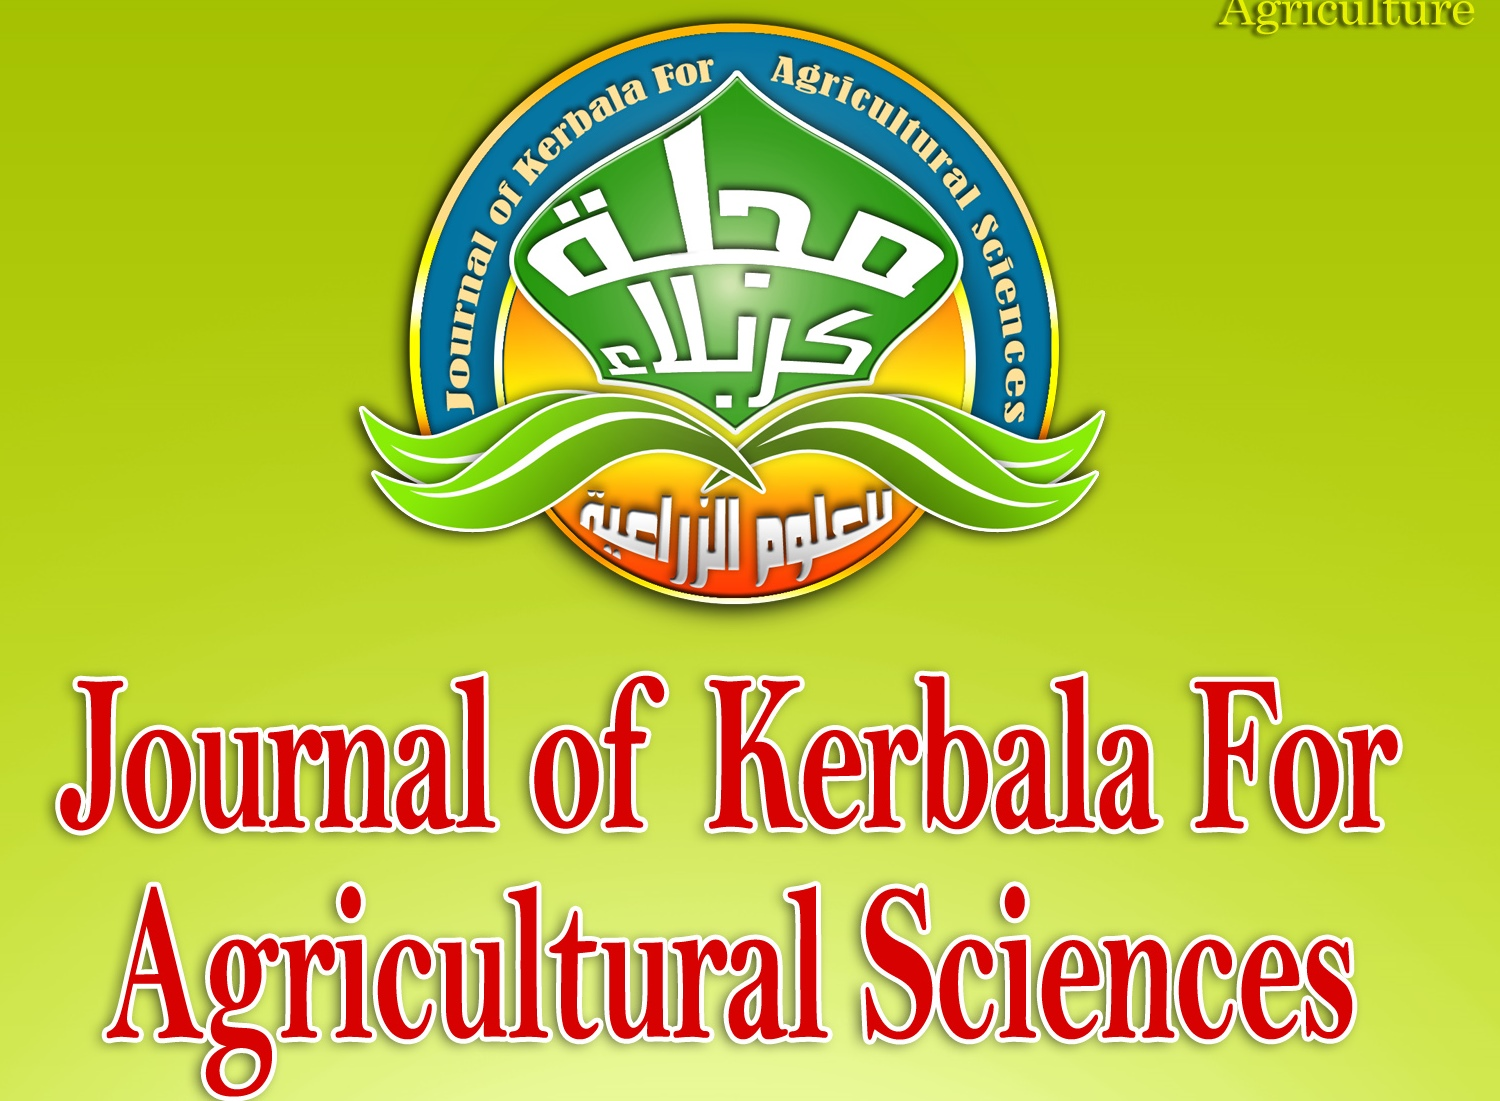 Journal of Kerbala for Agricultural Sciences